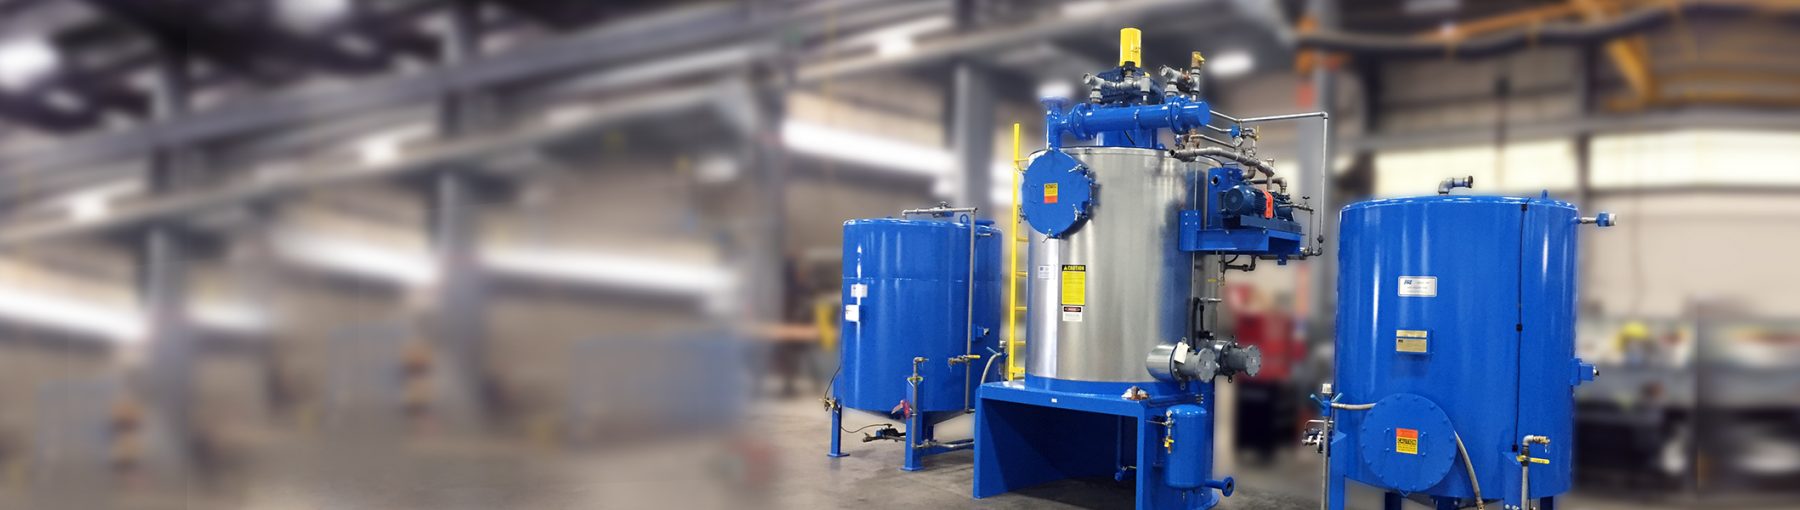 SCR solvent recycling system